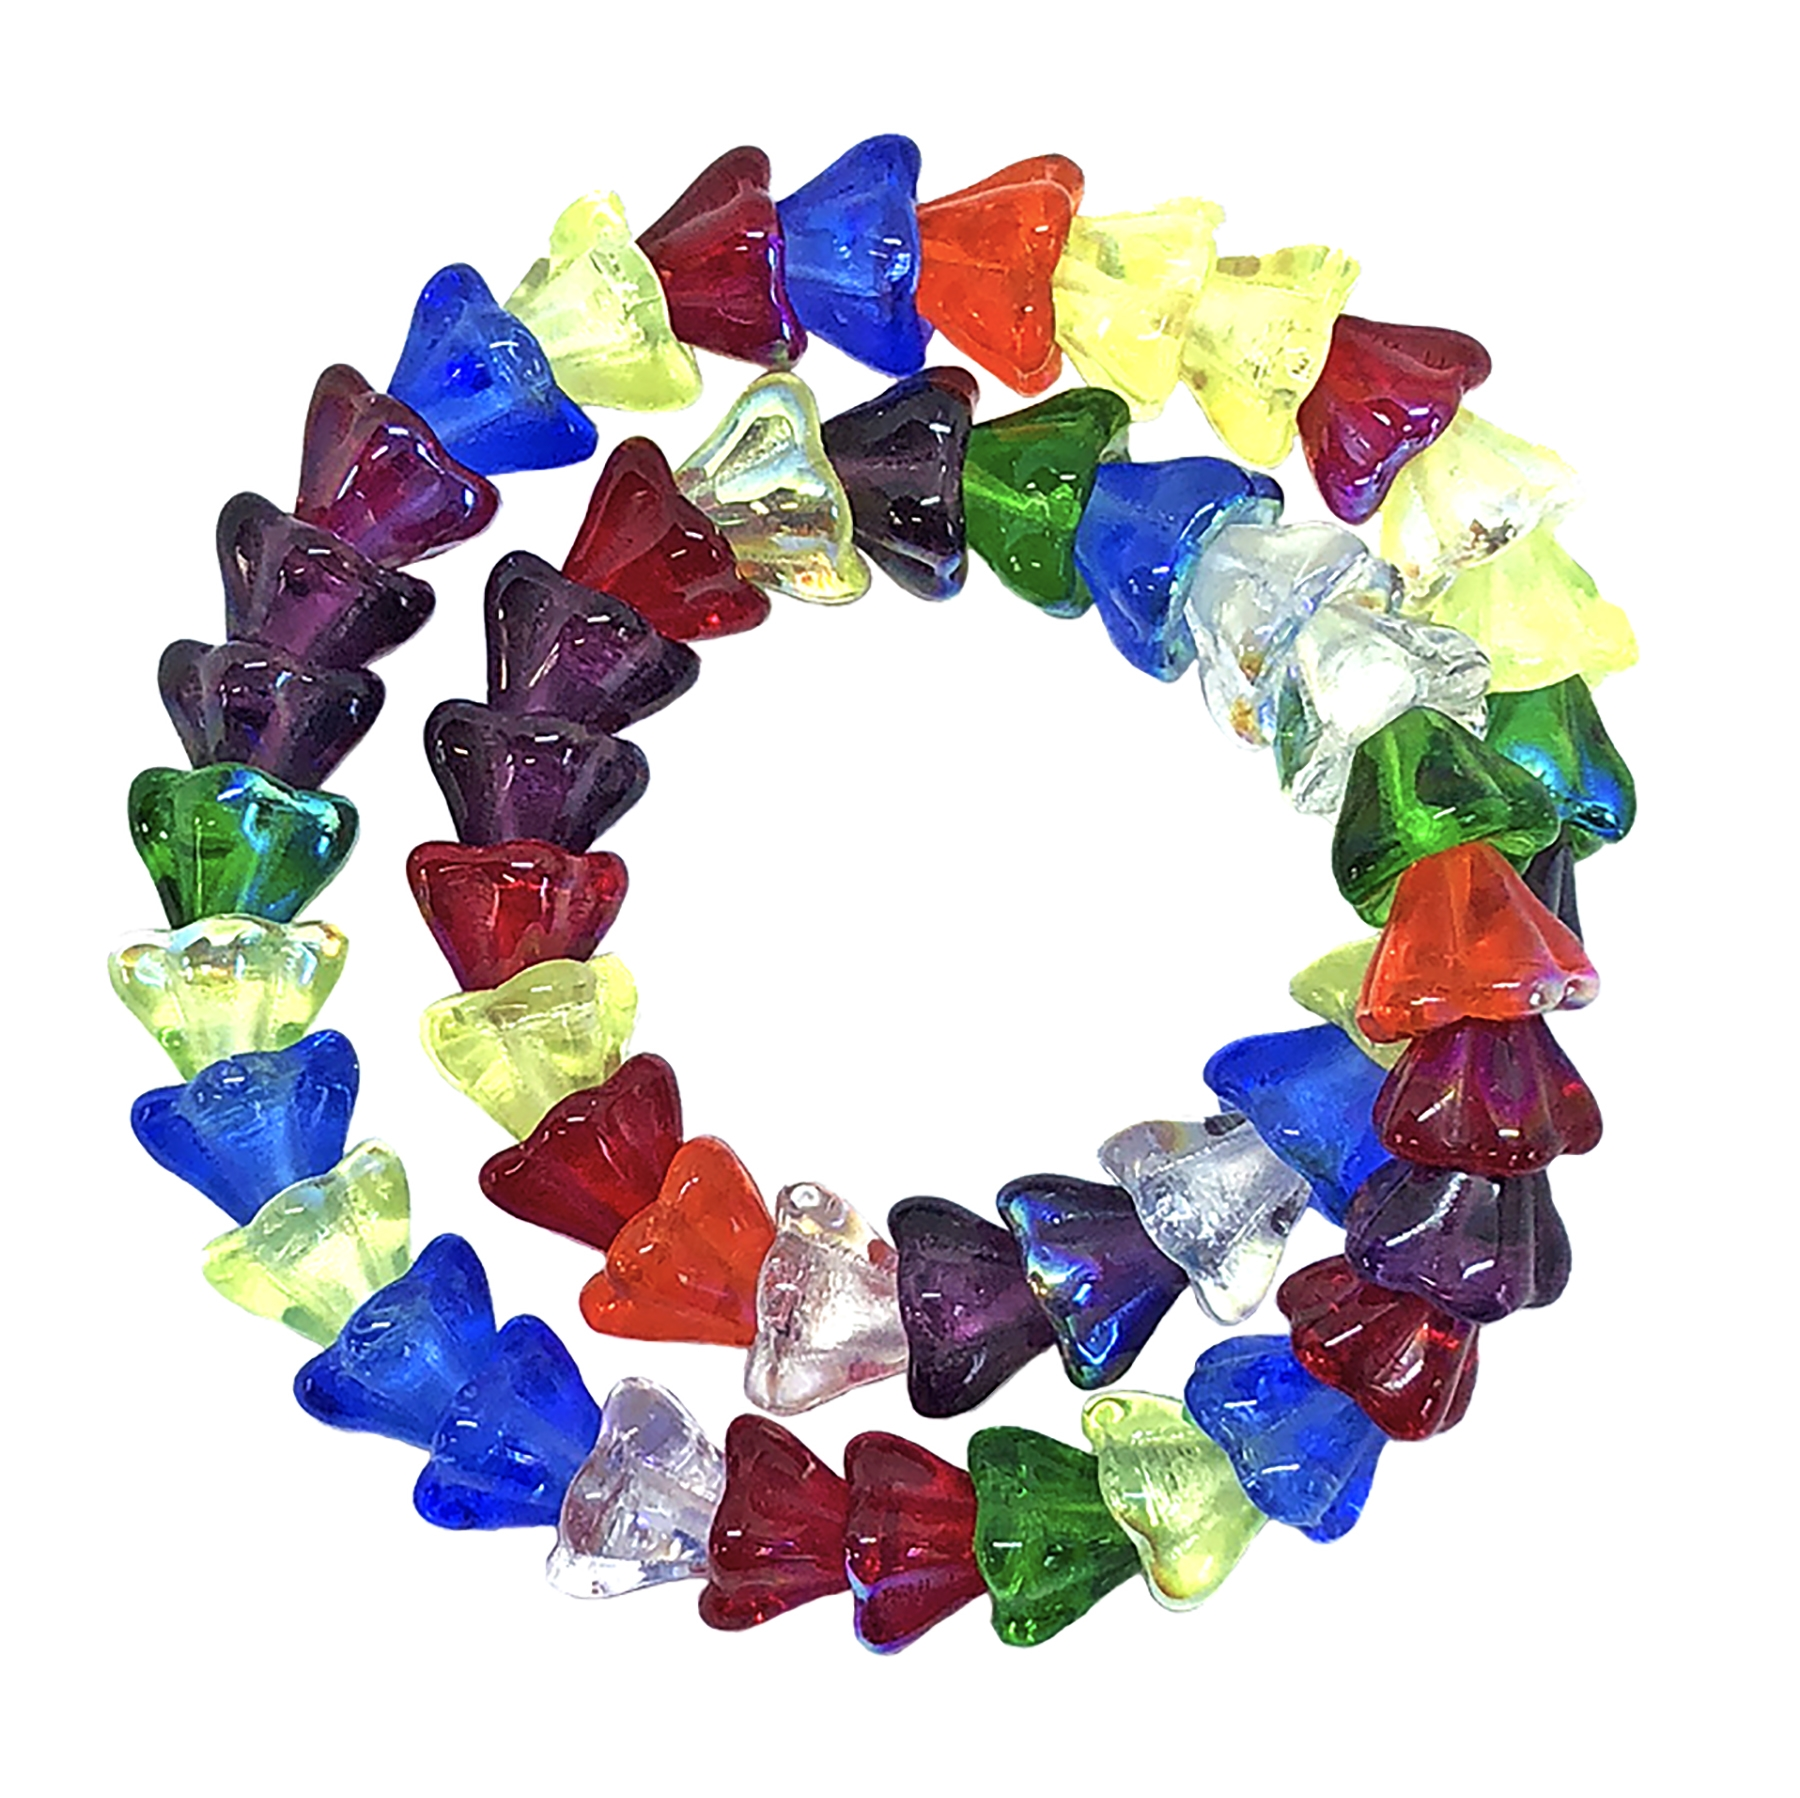 mix rainbow AB flower beads, flower beads, Czech glass beads, flower cone, rainbow, bell flowers, 6x8mm, assorted beads, beads, glass beads, amethyst, green, red, blue, clear white, mix rainbow beads, jewelry making, beading supplies, 09456